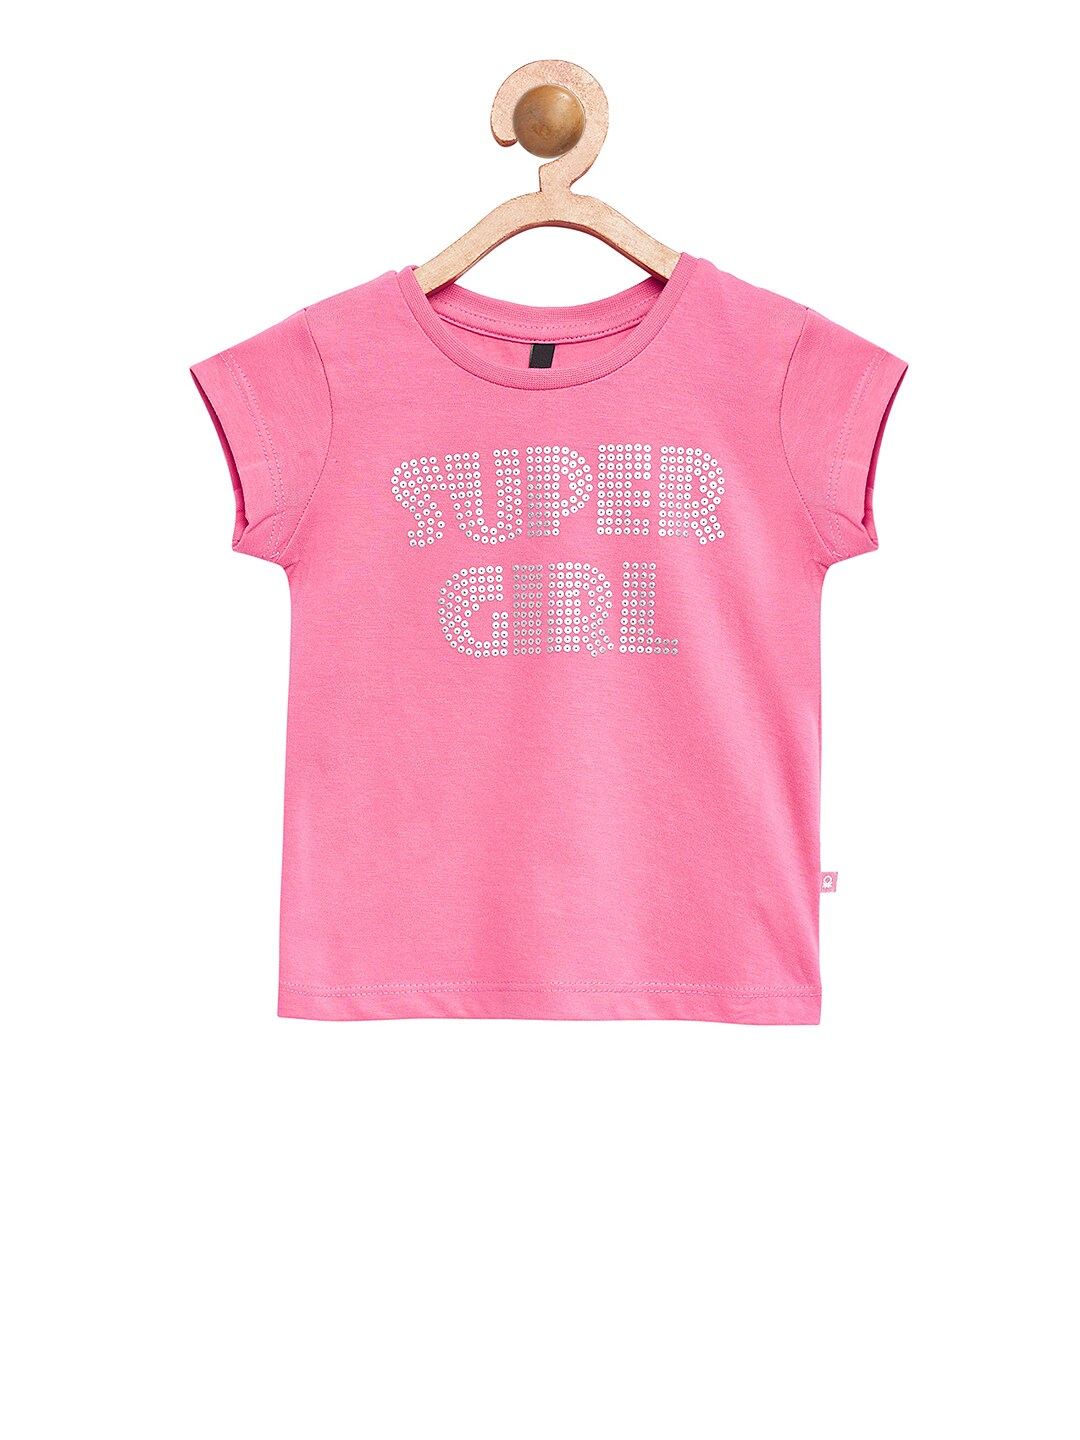 236e59e2bbe4 Girls Clothing